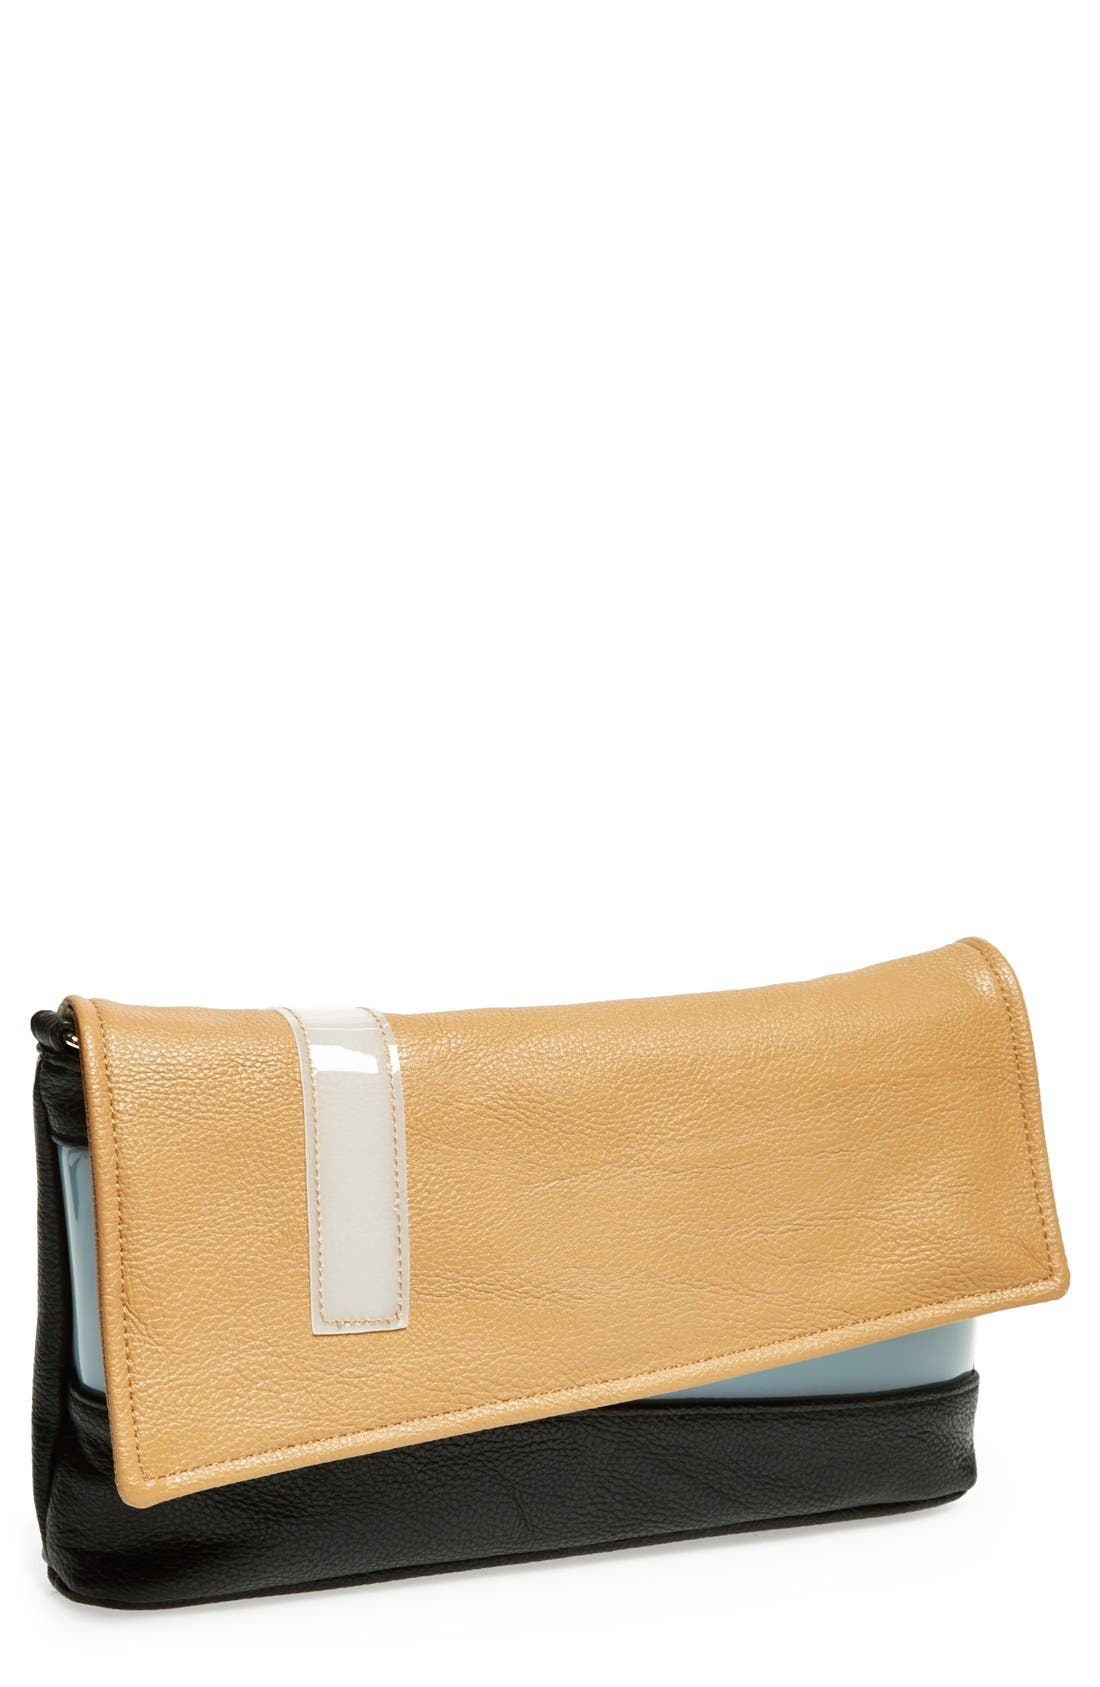 Alternate Image 1 Selected - POVERTY FLATS by rian Colorblock Flap Clutch